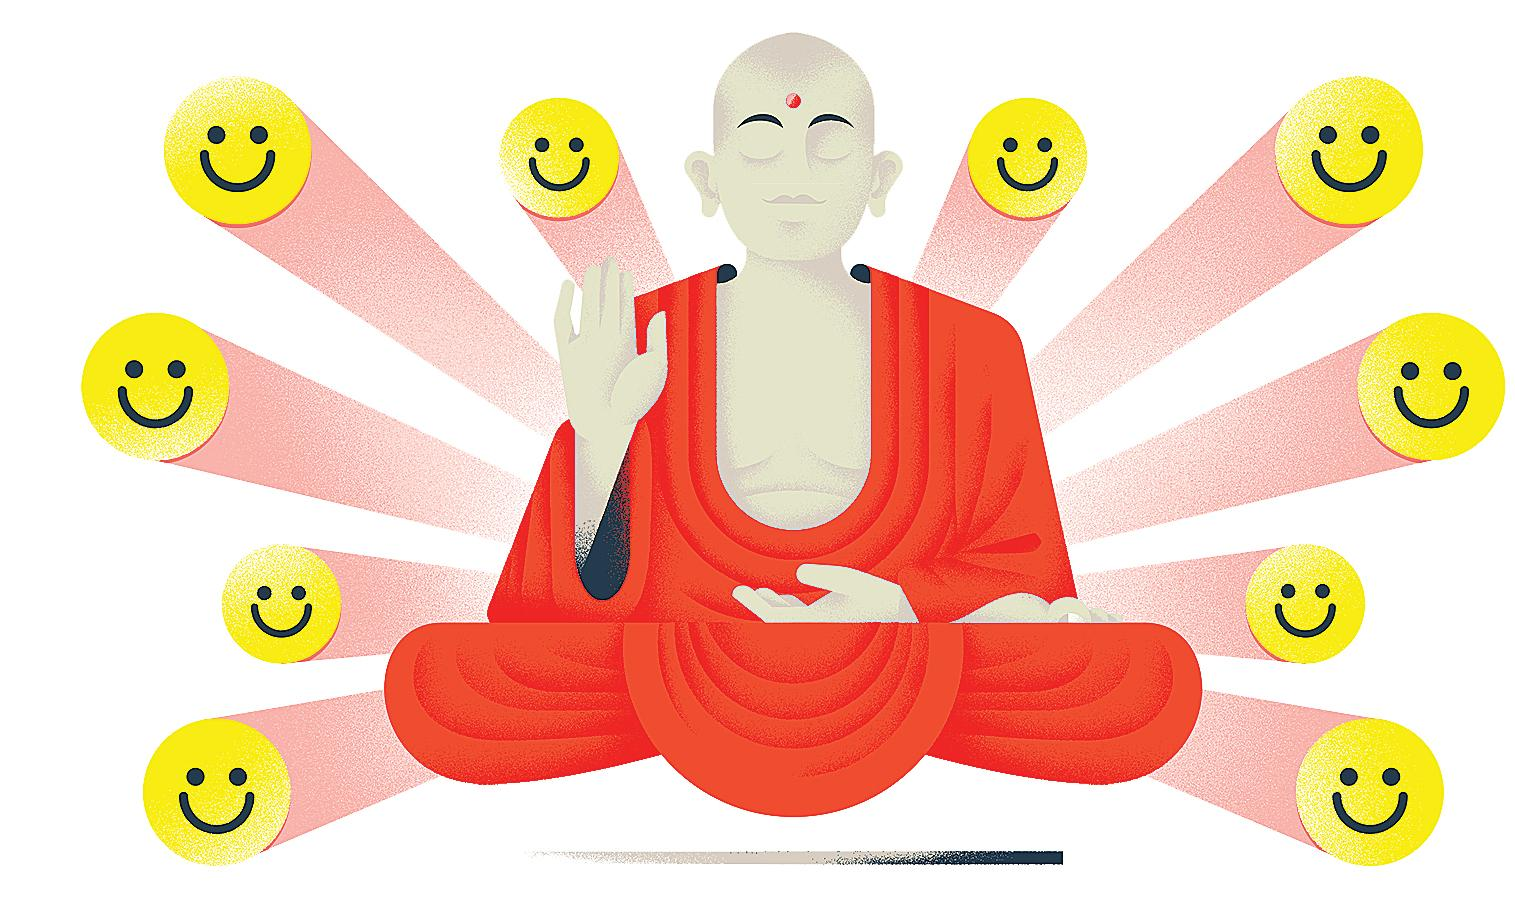 If you want to have a good time, ask a Buddhist